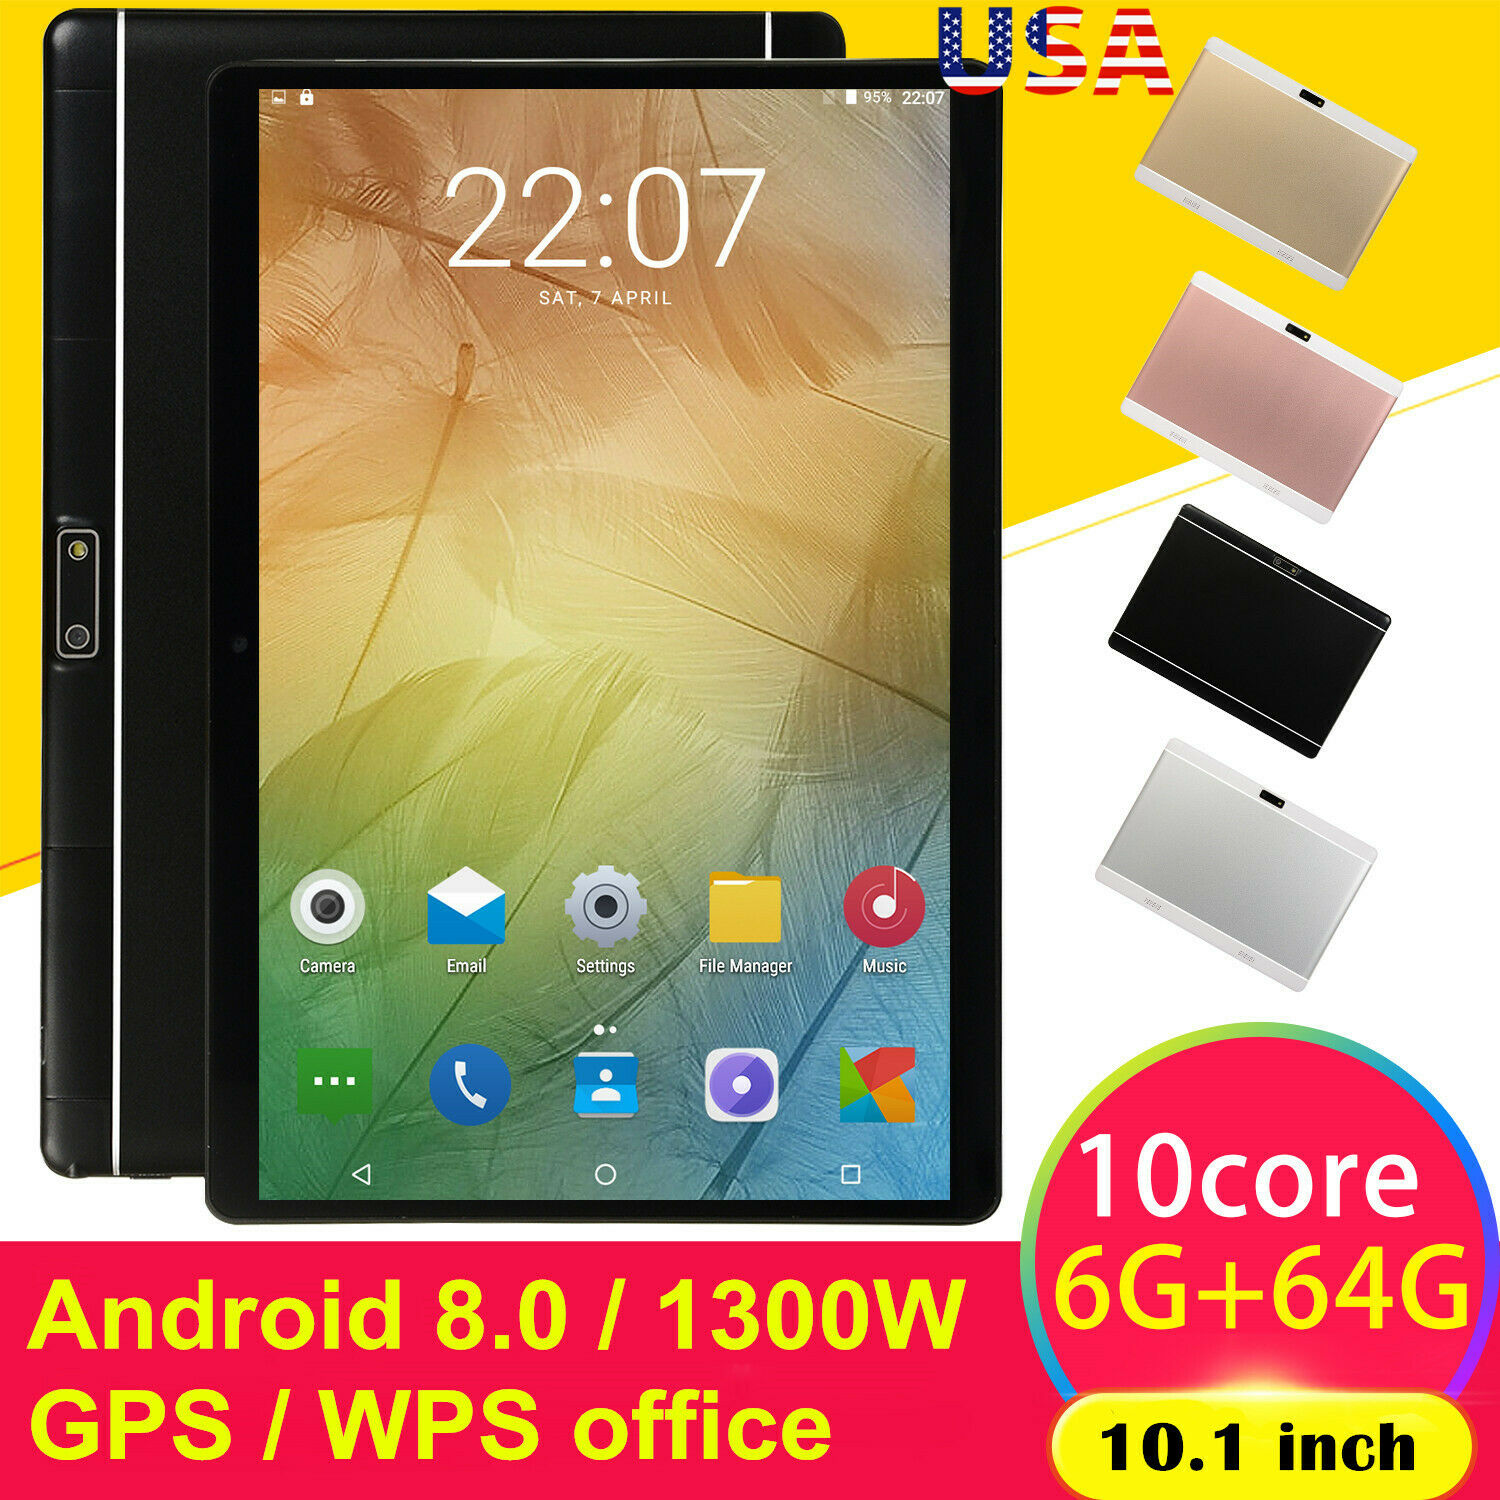 10.1 Inch HD Game Tablet 6G+64G Android 8.0 Computer PC Ten-Core GPS WIFI Dual Camera Tablet Pad Support Dual Sim Card